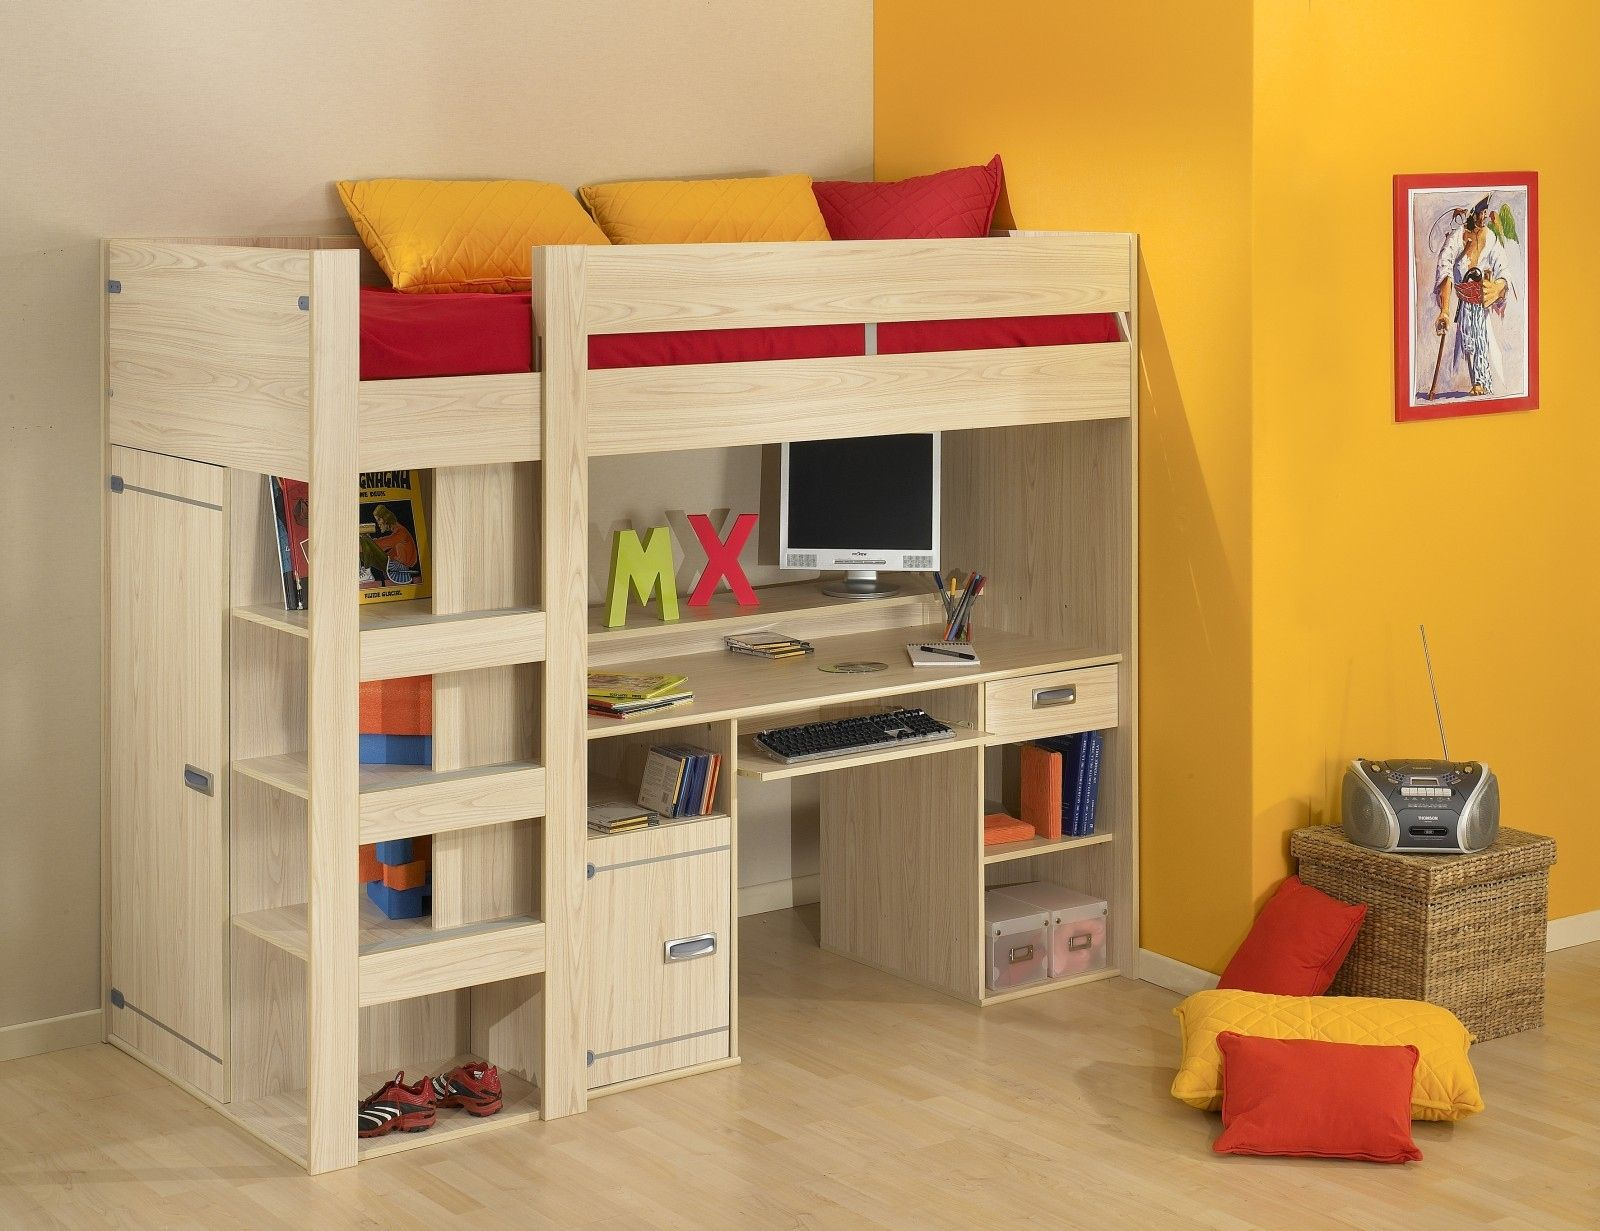 Boys Bed With Desk New Living Room Set Check More At Http Www Gameintown Com Boys Bed With Desk Bunk Bed With Desk Kids Loft Beds Bed With Desk Underneath